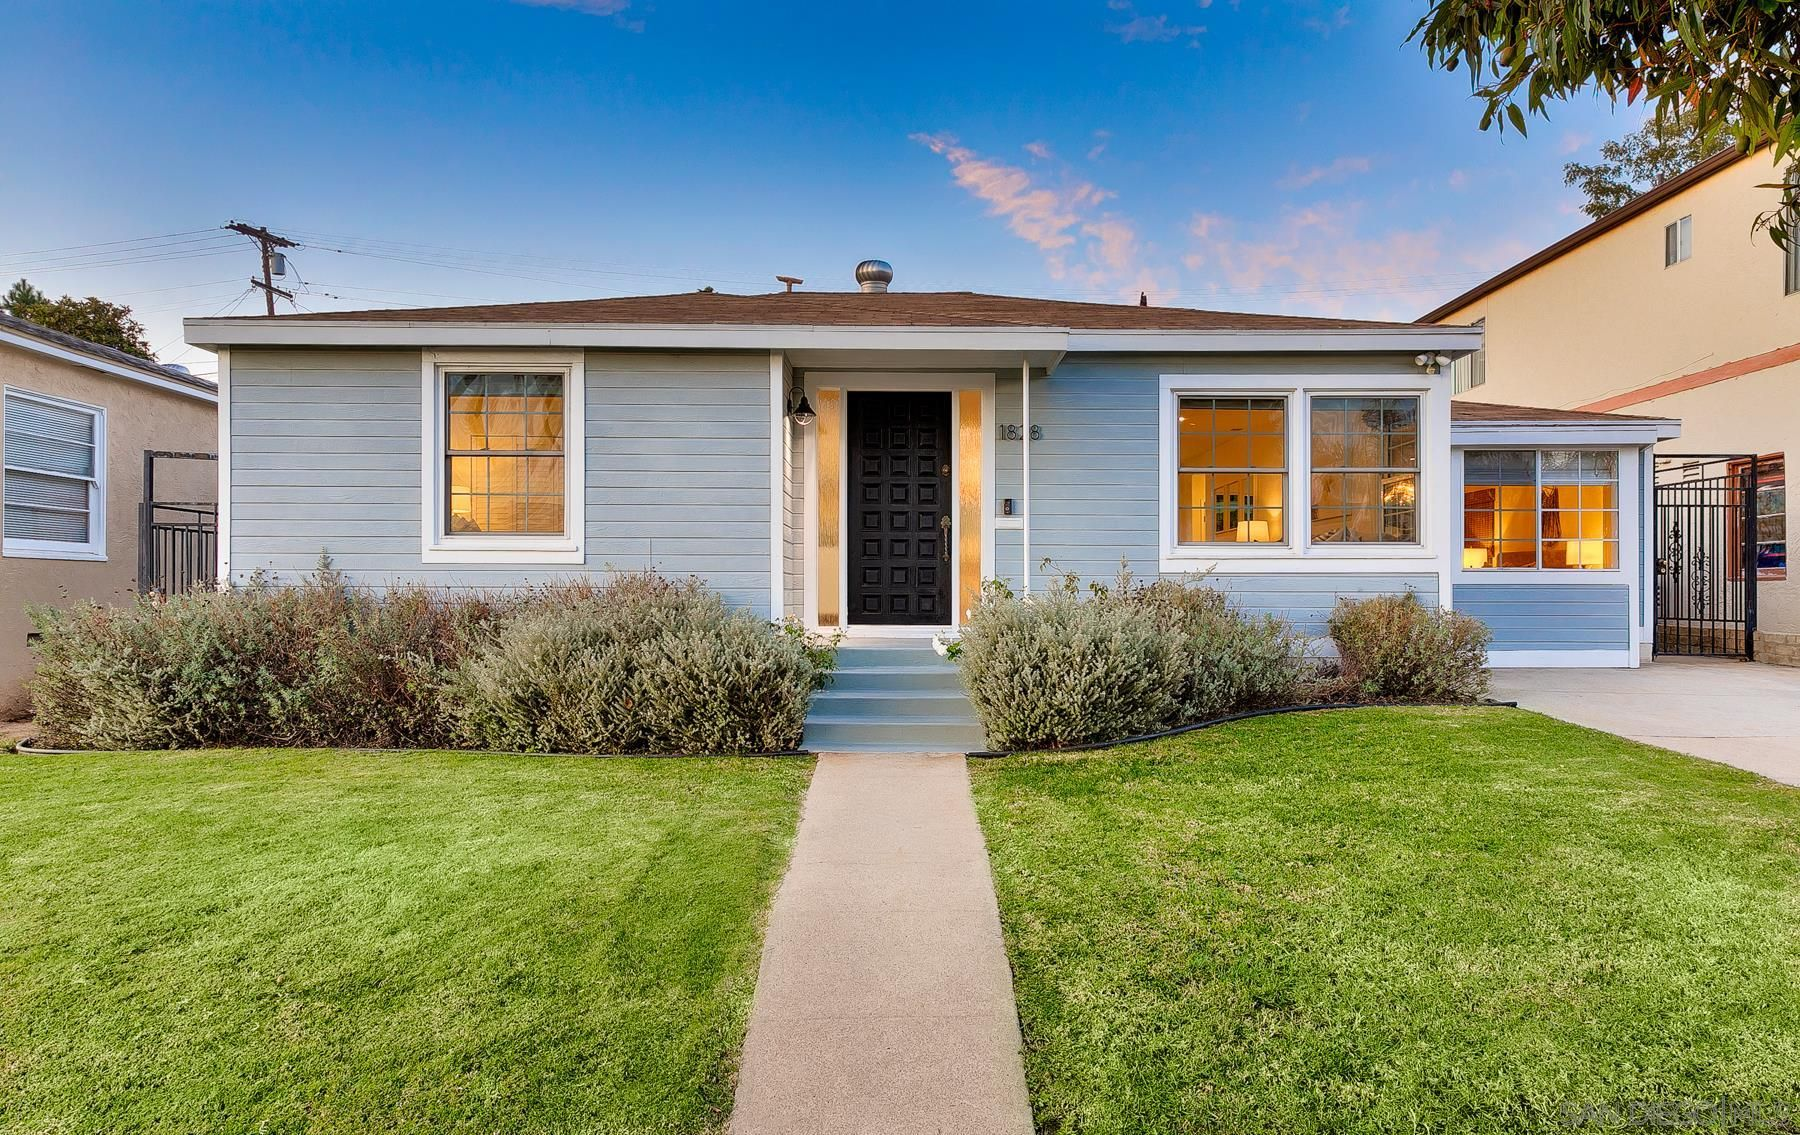 Main Photo: PACIFIC BEACH House for sale : 4 bedrooms : 1828 Law St in San Diego